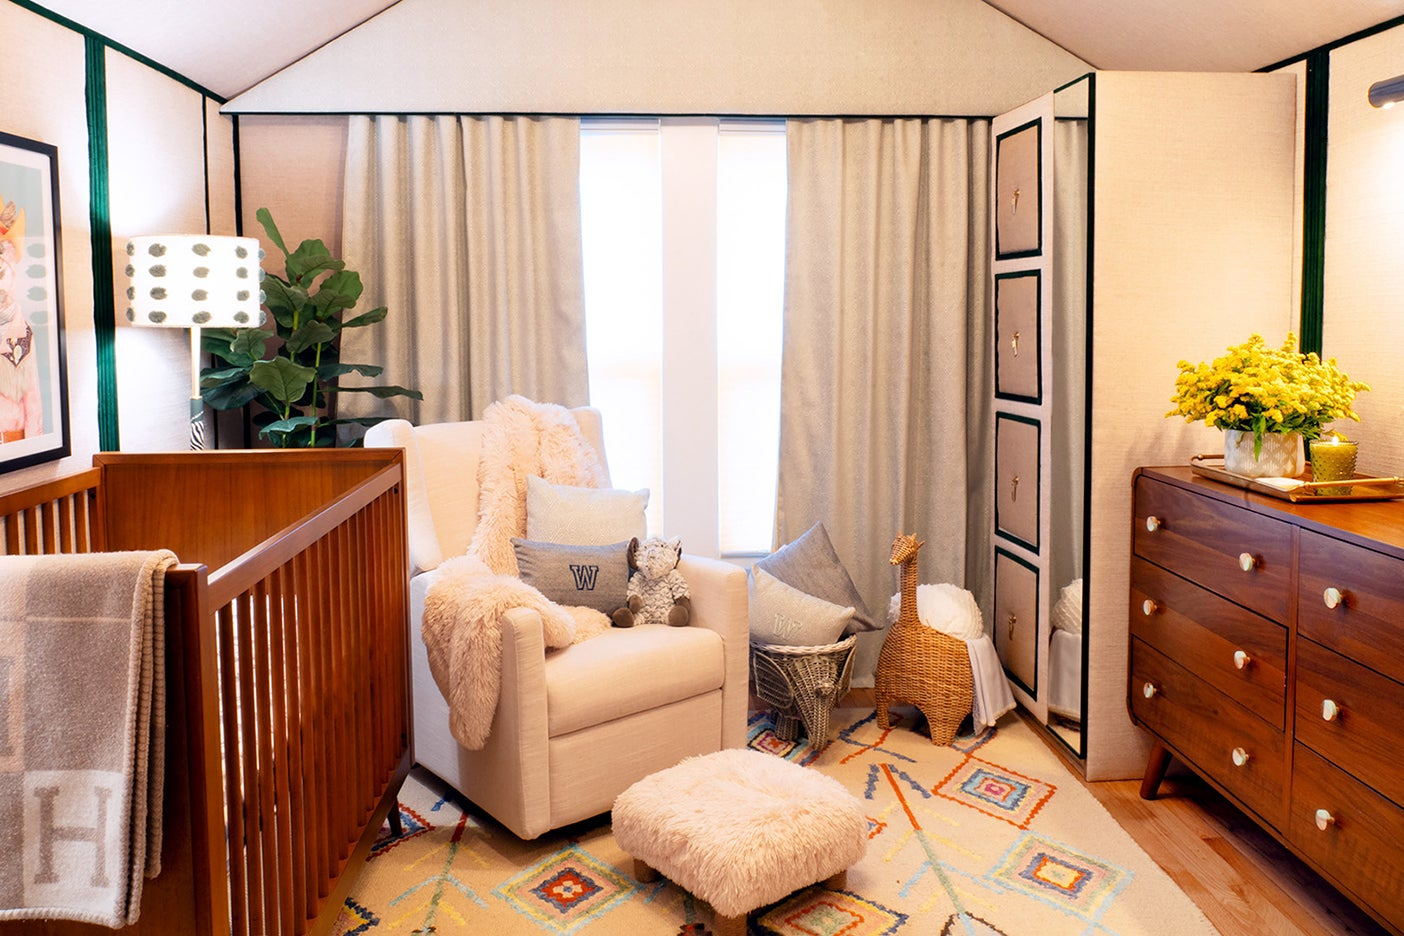 Nursery with fabric-lined walls